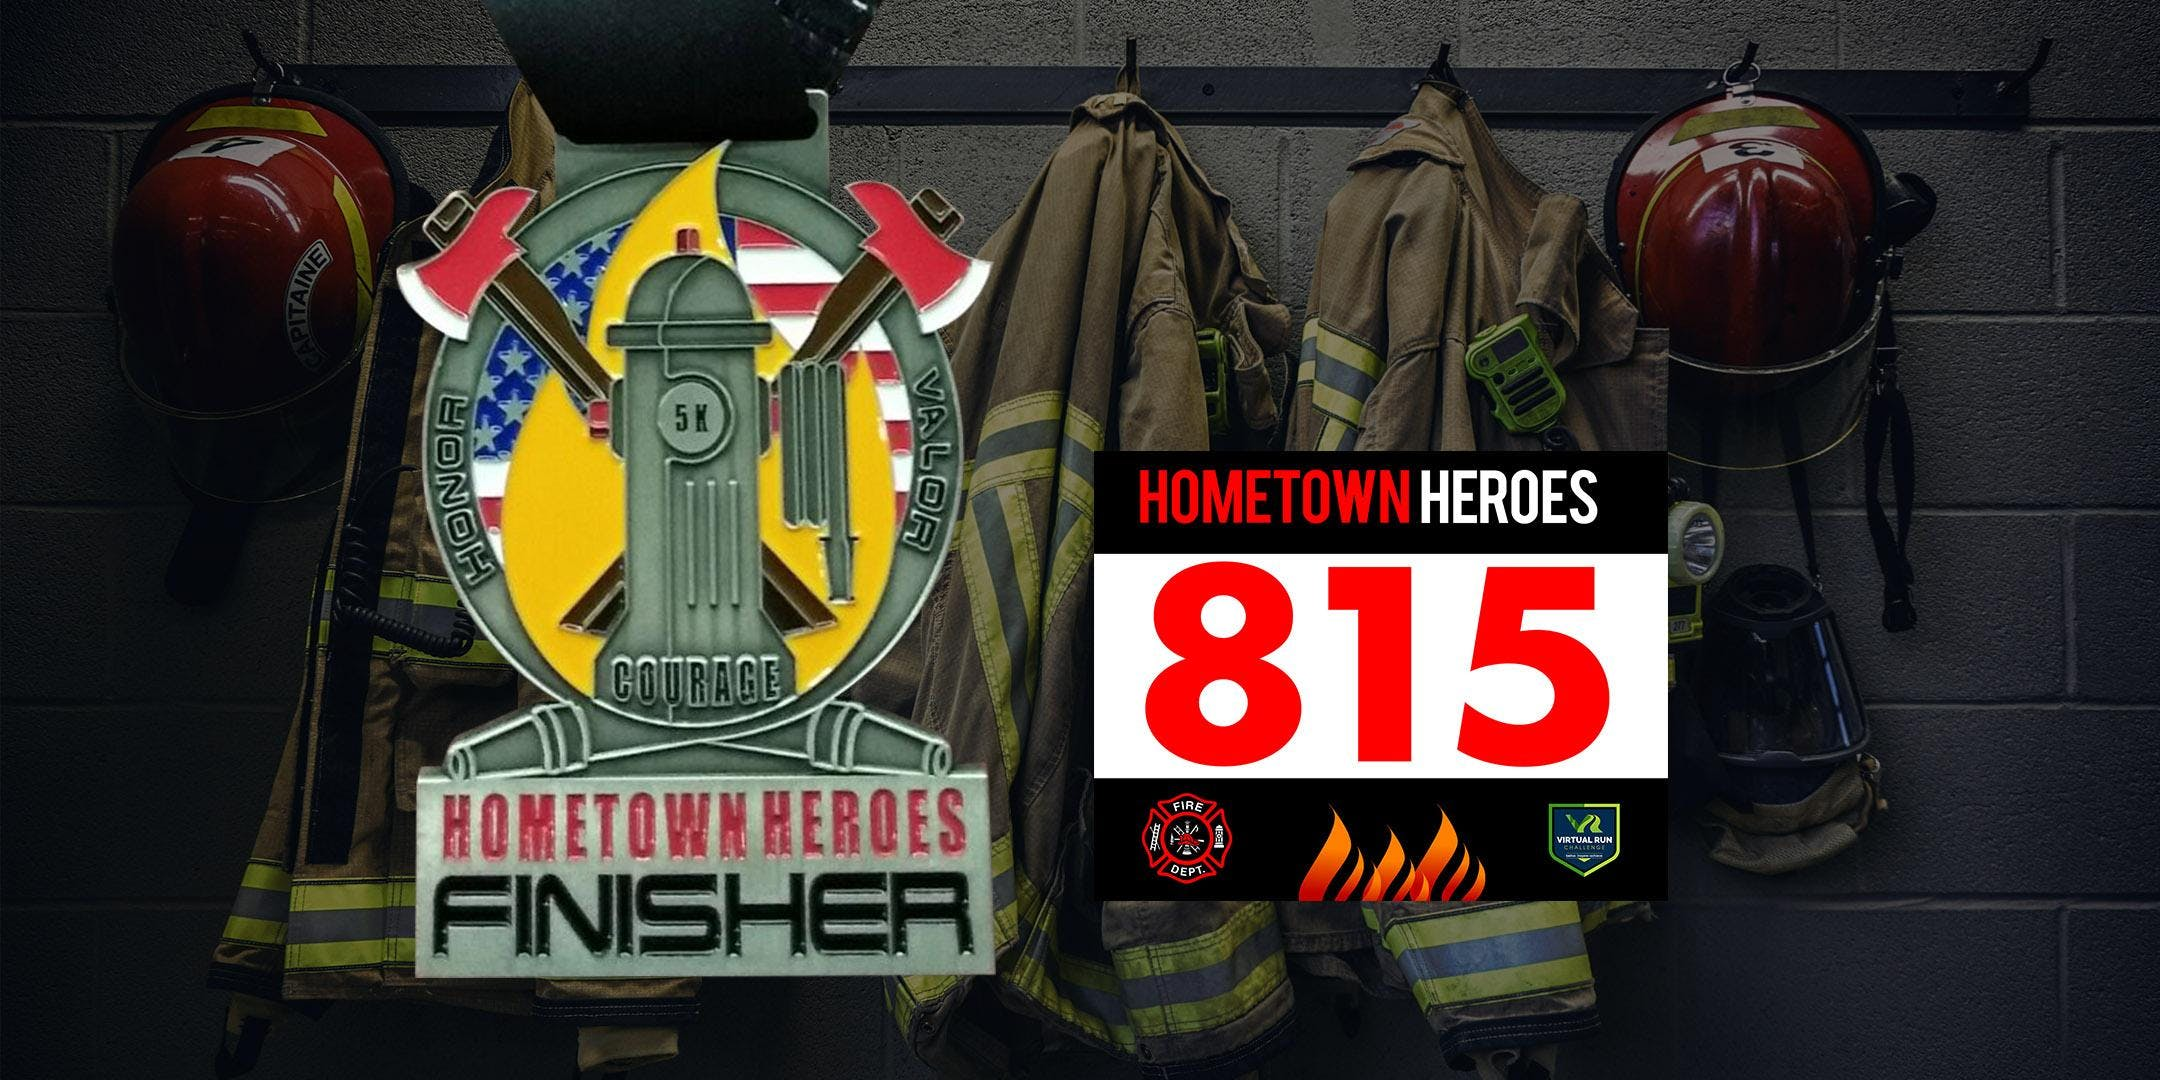 Hometown Heroes Firefighter Virtual 5k Run Walk - Phoenix